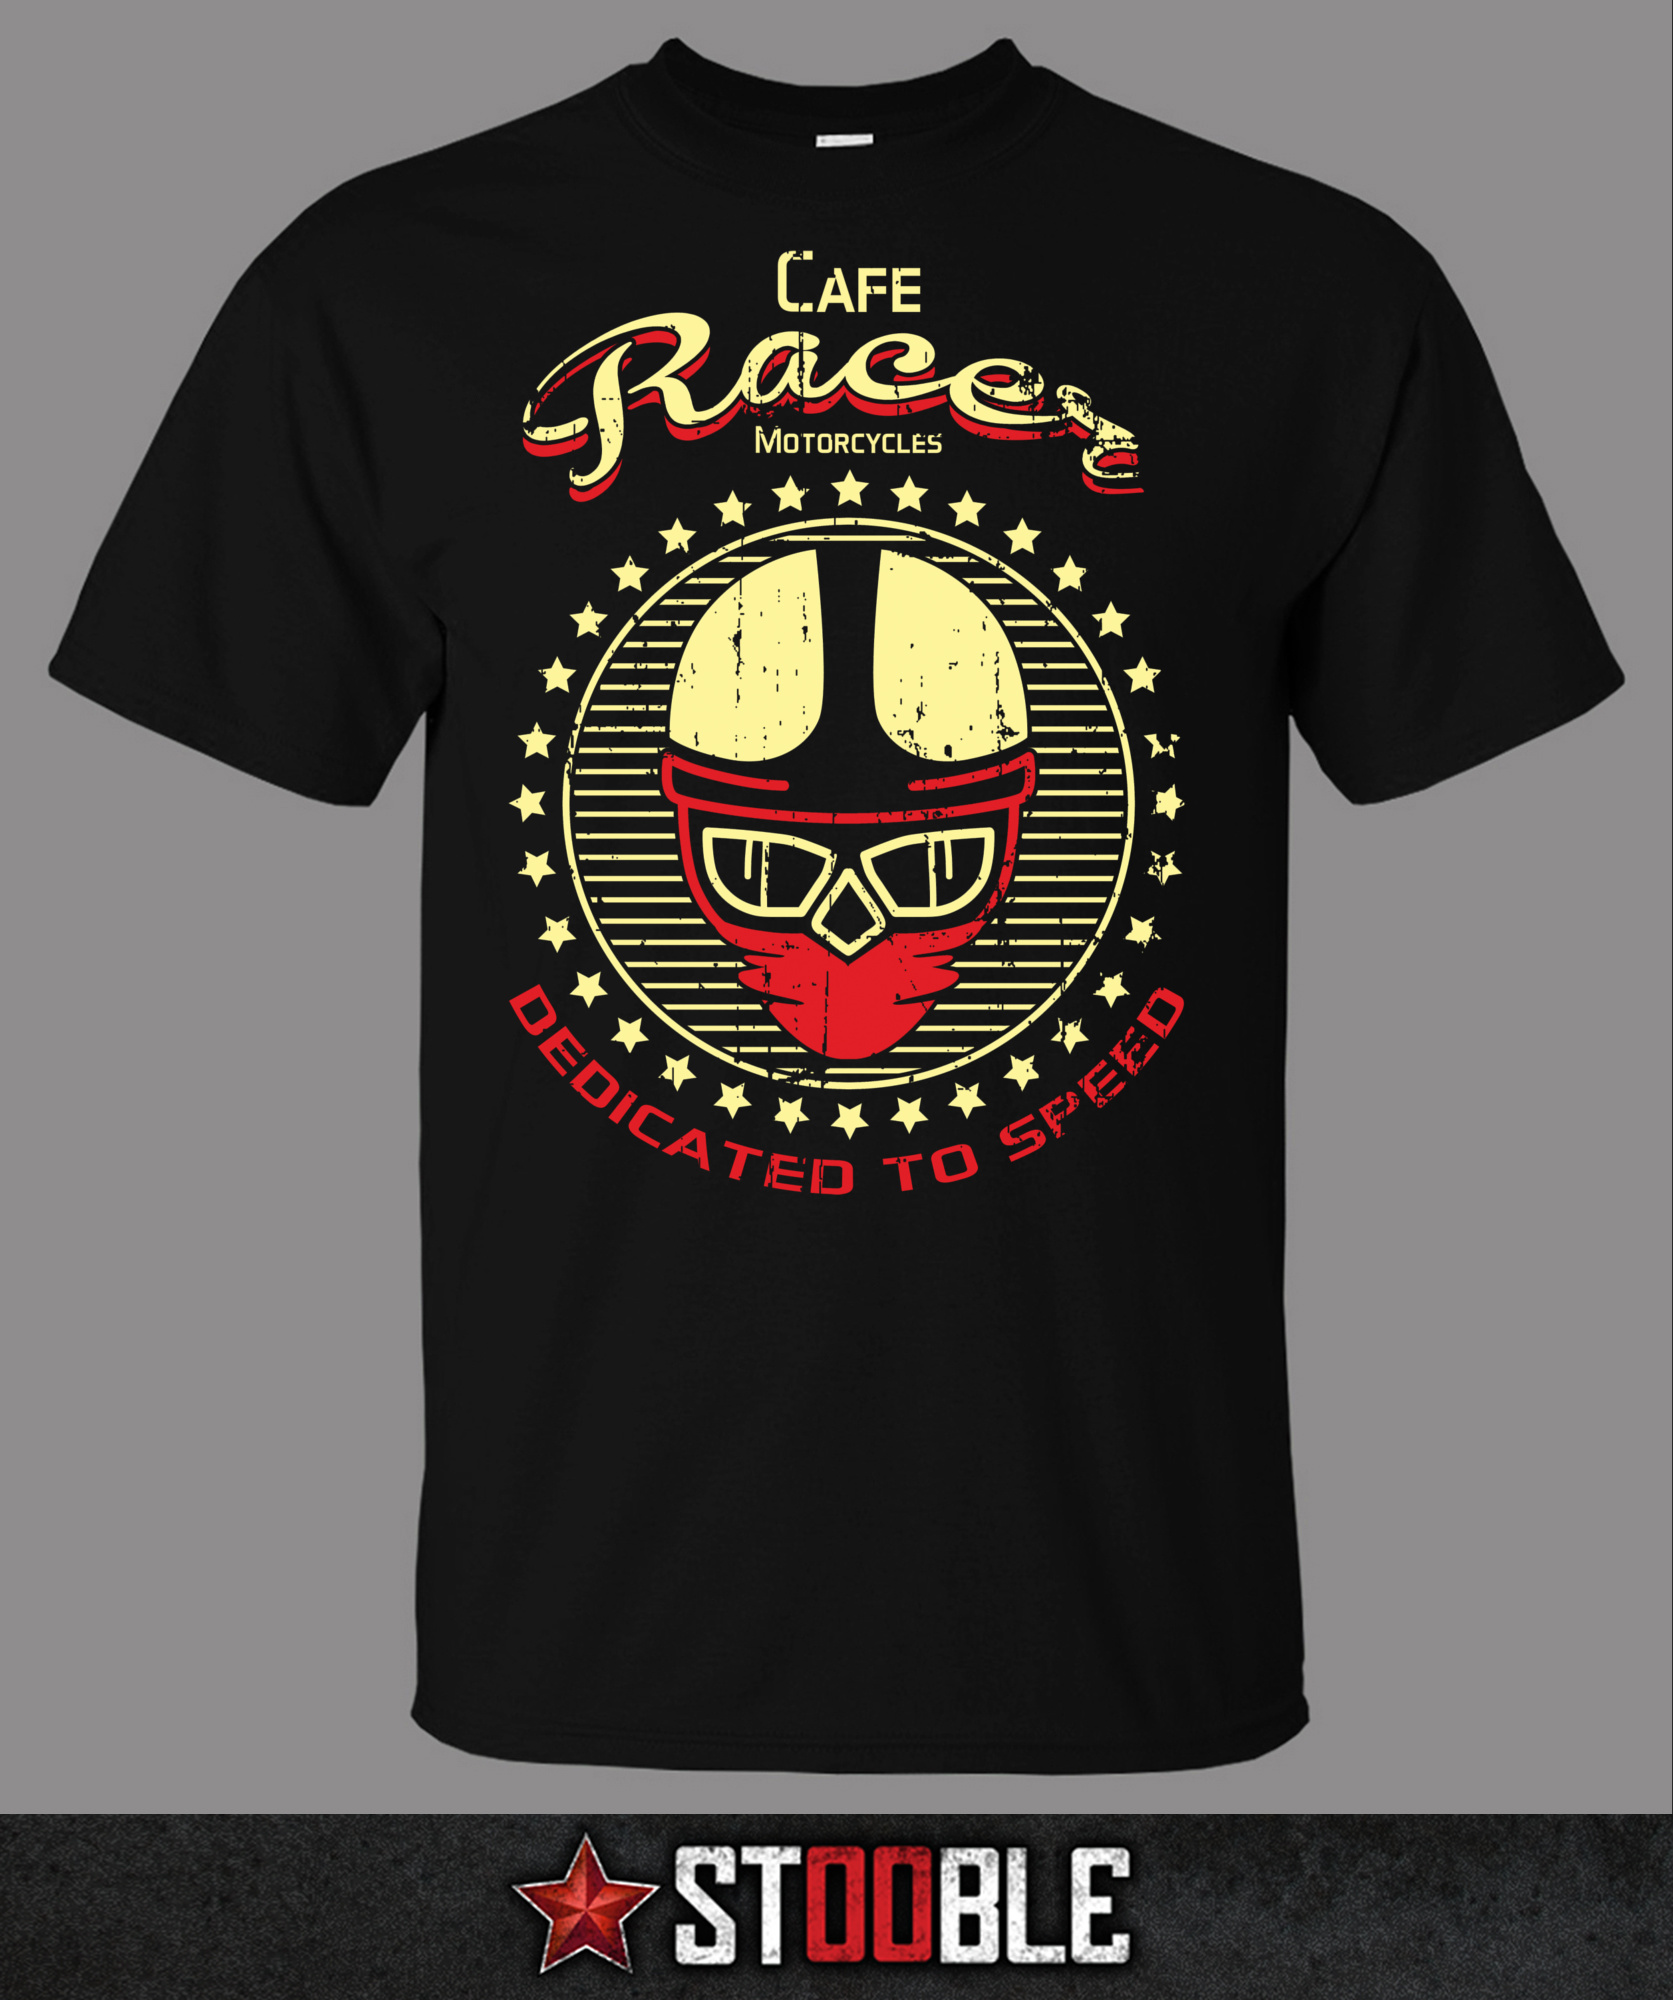 Cafe Racer Dedicated to Speed T-Shirt - Direct from Stockist New T Shirts Funny Tops Tee Unisex Loose Clothes